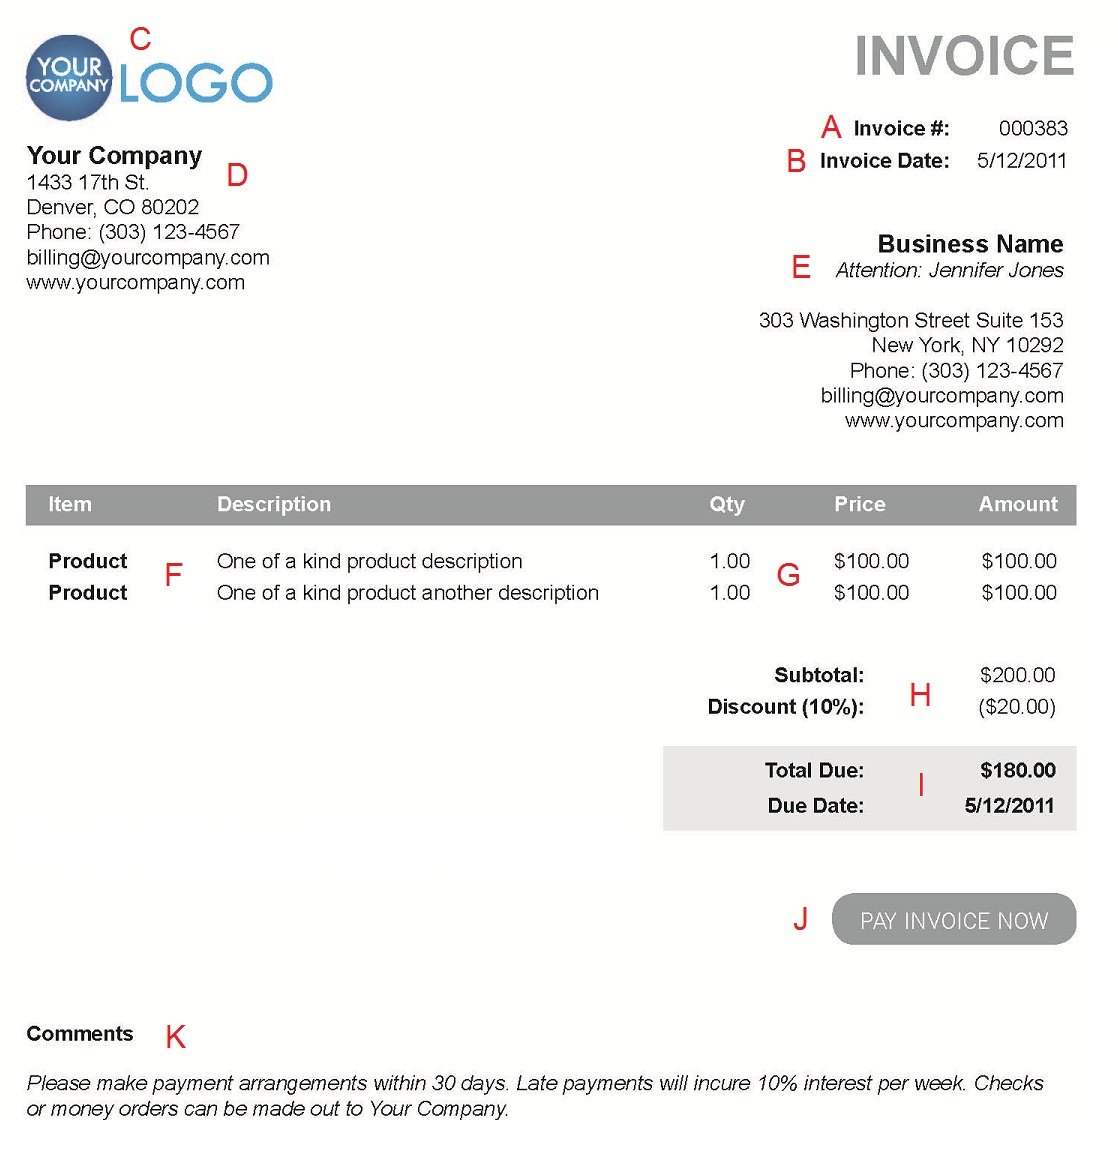 Aaaaeroincus  Prepossessing The  Different Sections Of An Electronic Payment Invoice With Glamorous A  With Cool Component Hand Receipt Also Rent Receipts Format In Addition Loan Payment Receipt Template And Rent Receipt Books As Well As Lic Premium Receipt Additionally How To Keep Track Of Receipts For Small Business From Paysimplecom With Aaaaeroincus  Glamorous The  Different Sections Of An Electronic Payment Invoice With Cool A  And Prepossessing Component Hand Receipt Also Rent Receipts Format In Addition Loan Payment Receipt Template From Paysimplecom